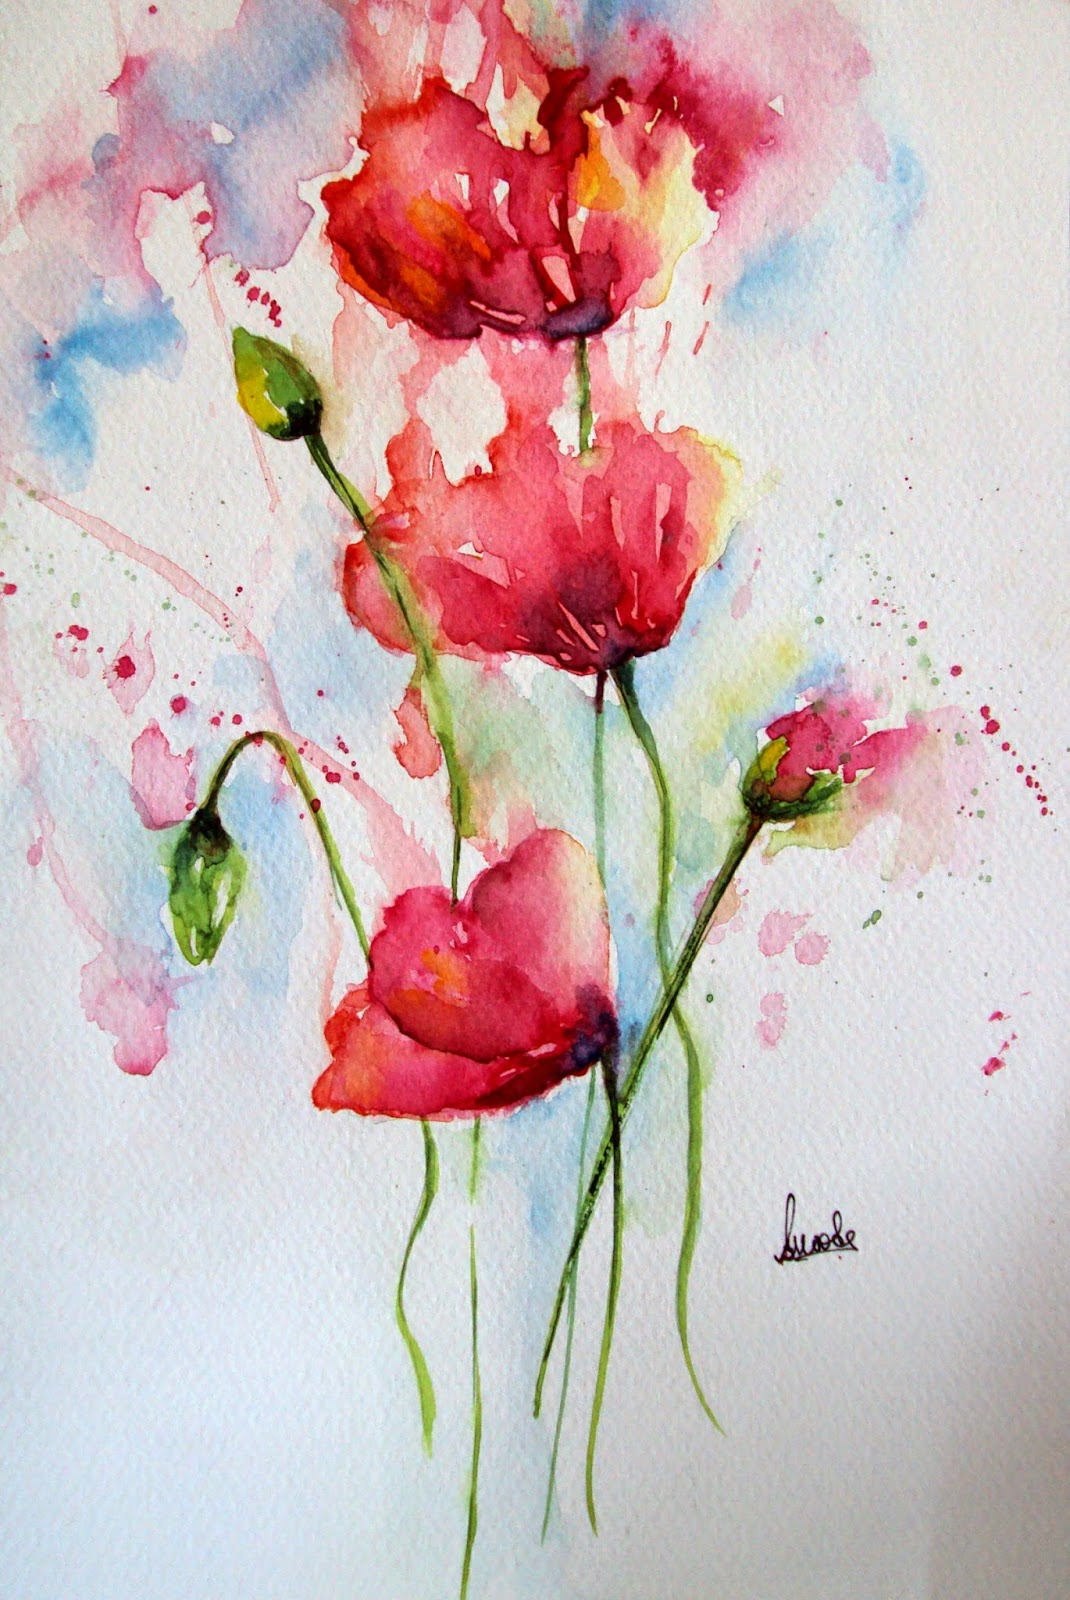 watercolor paintings images - 736×1100